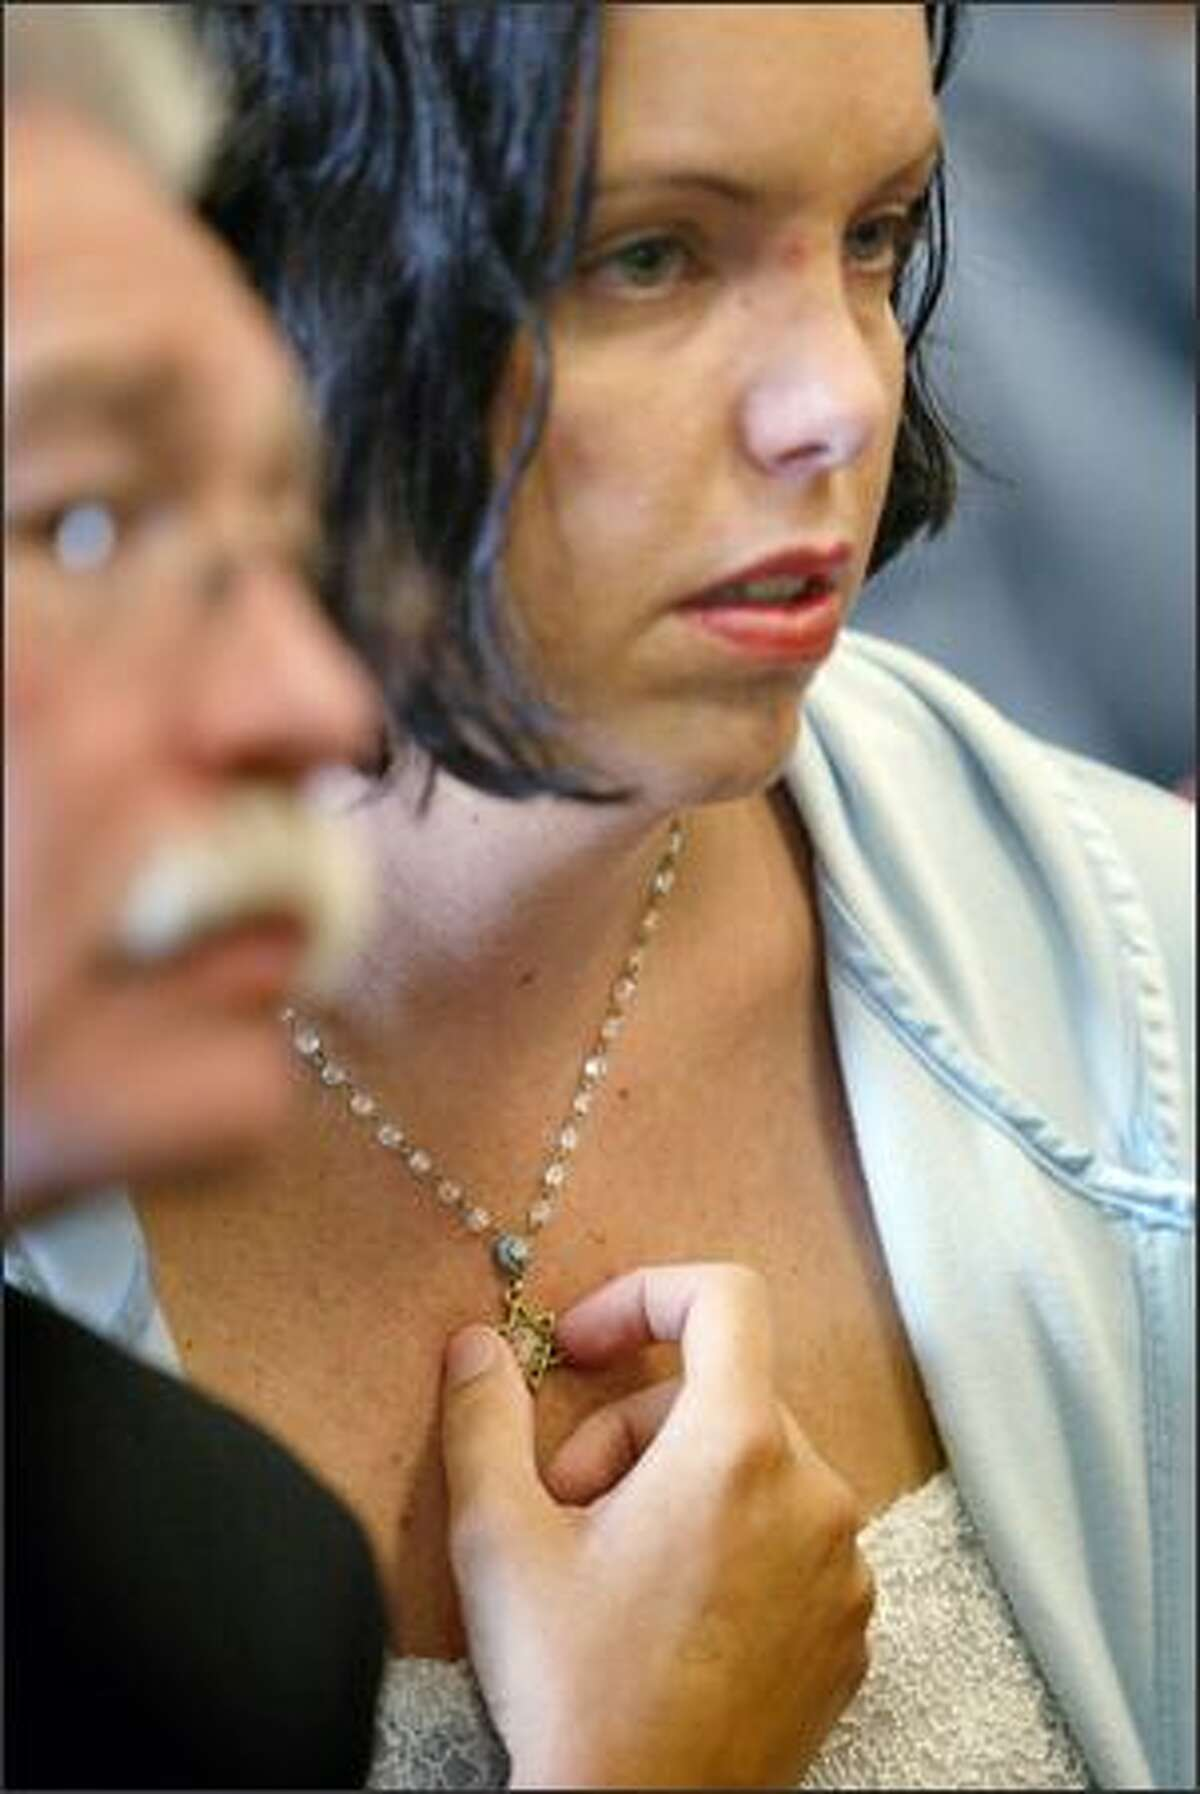 Tammy Kaiser, the employee of the Jewish Federation of Greater Seattle who fled the shooting by jumping through a window, touches her Star of David pendant during the arraignment for Naveed Haq at the King County Courthouse in Seattle on Thursday.